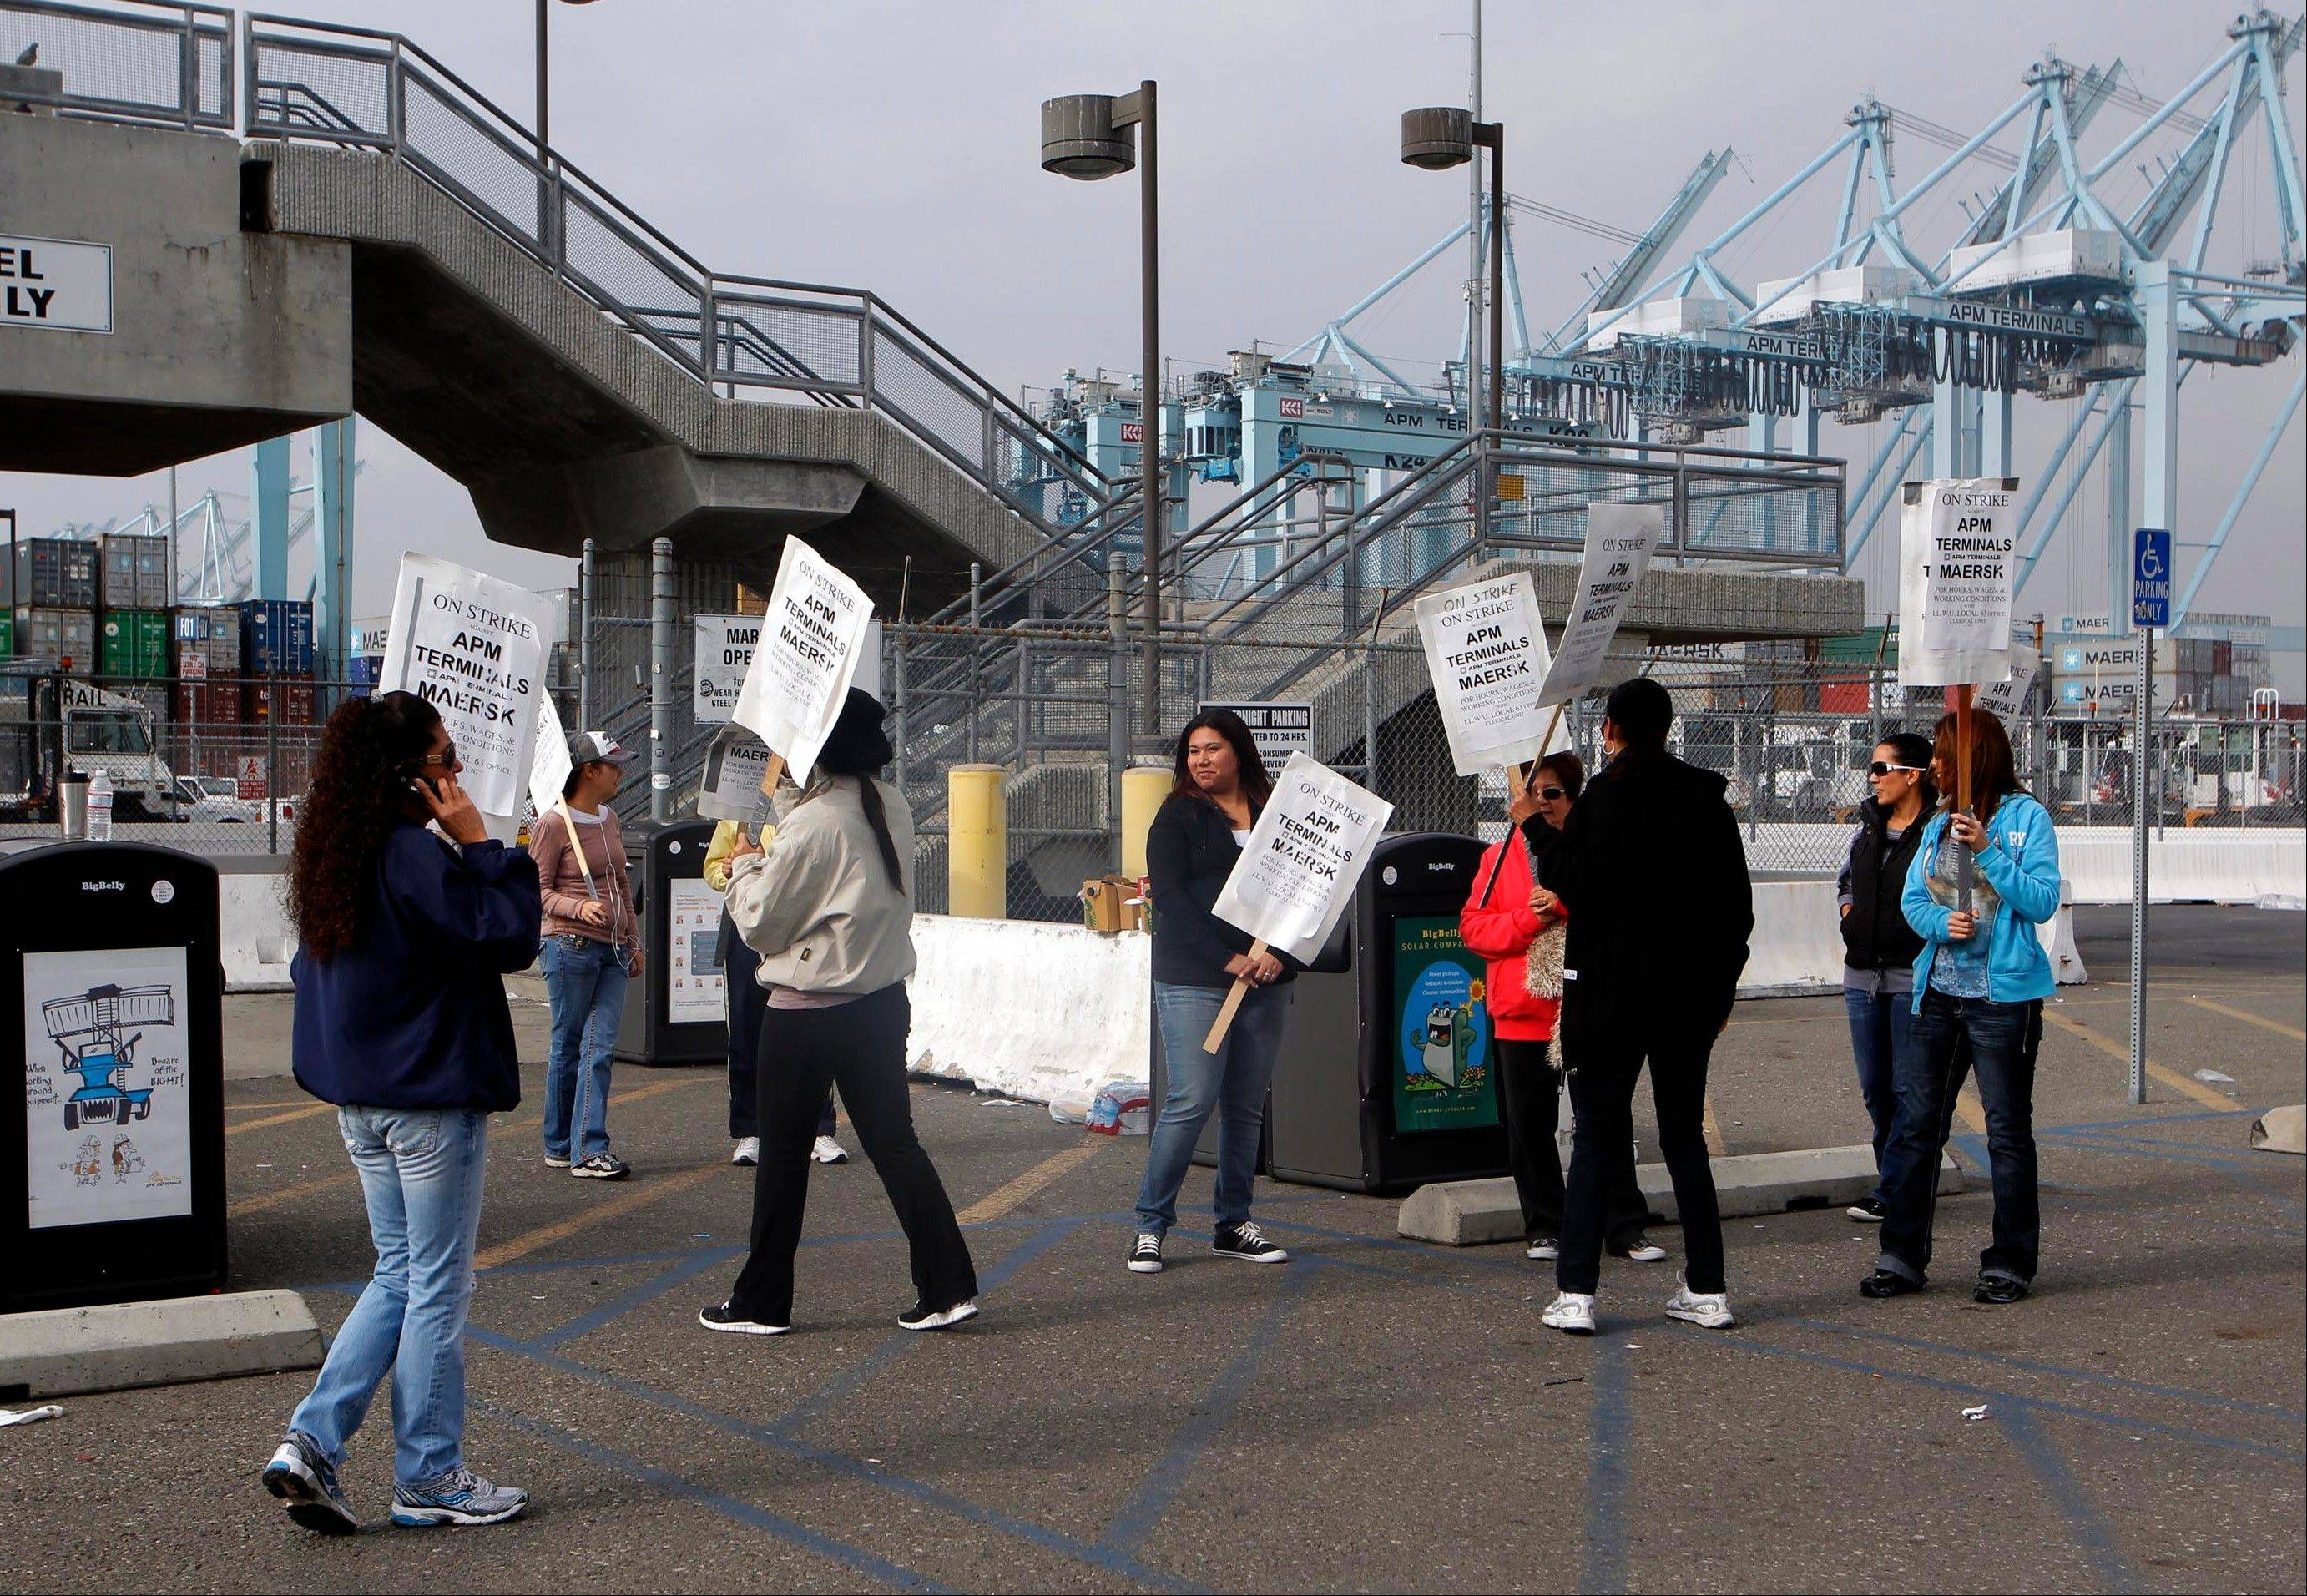 Labor talks are resuming in an effort to end a strike that shut down most of the terminals at the nation�s busiest port complex, the Los Angeles and Long Beach harbors, officials say.